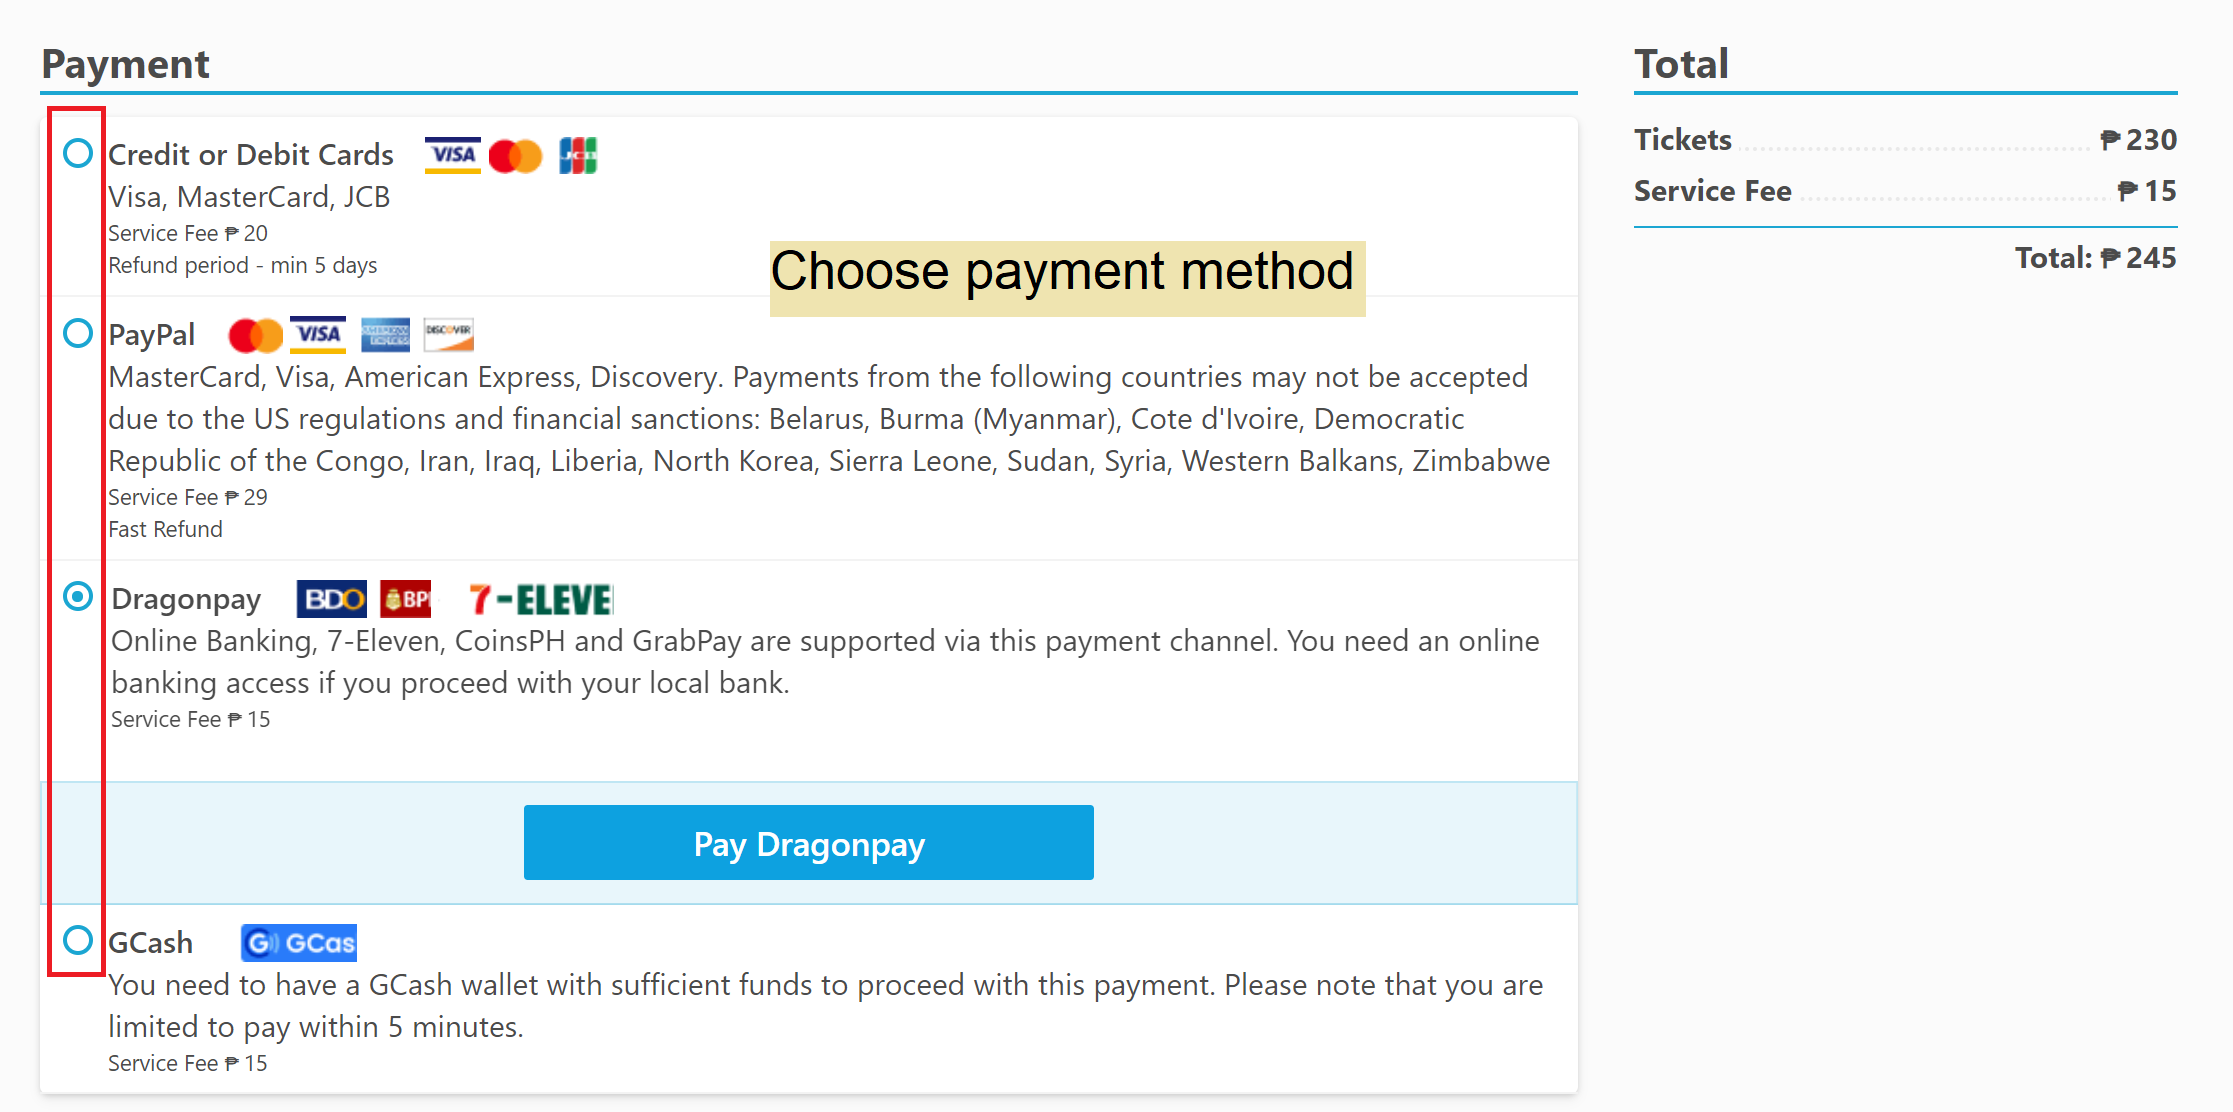 phbus-payment-options-new.png